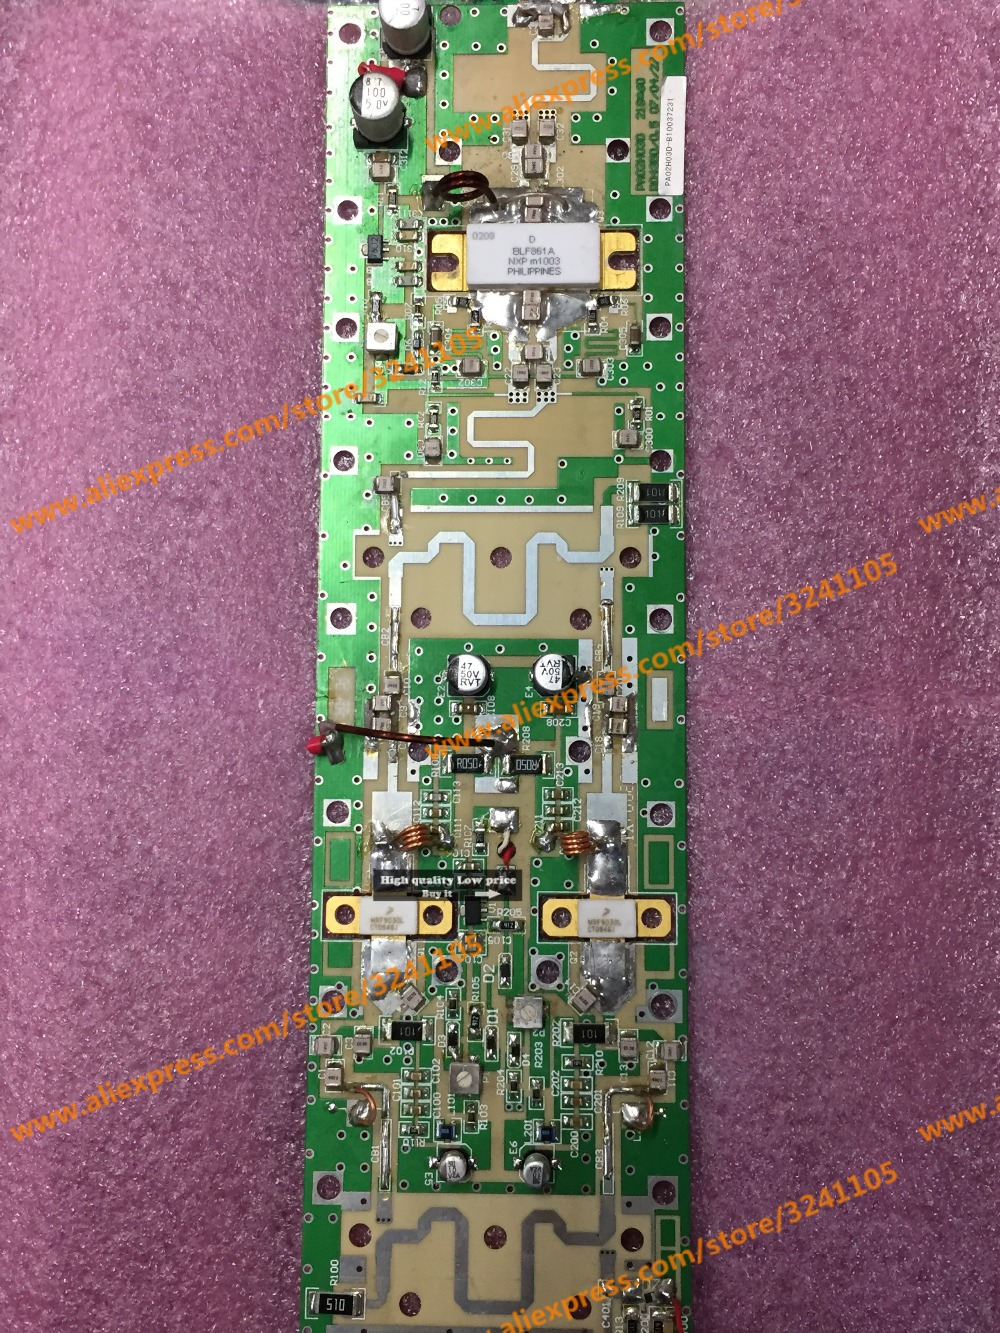 Free shipping MRF9030L BLF861A board module test good Second-hand motherboard high demand buyer please do not buy